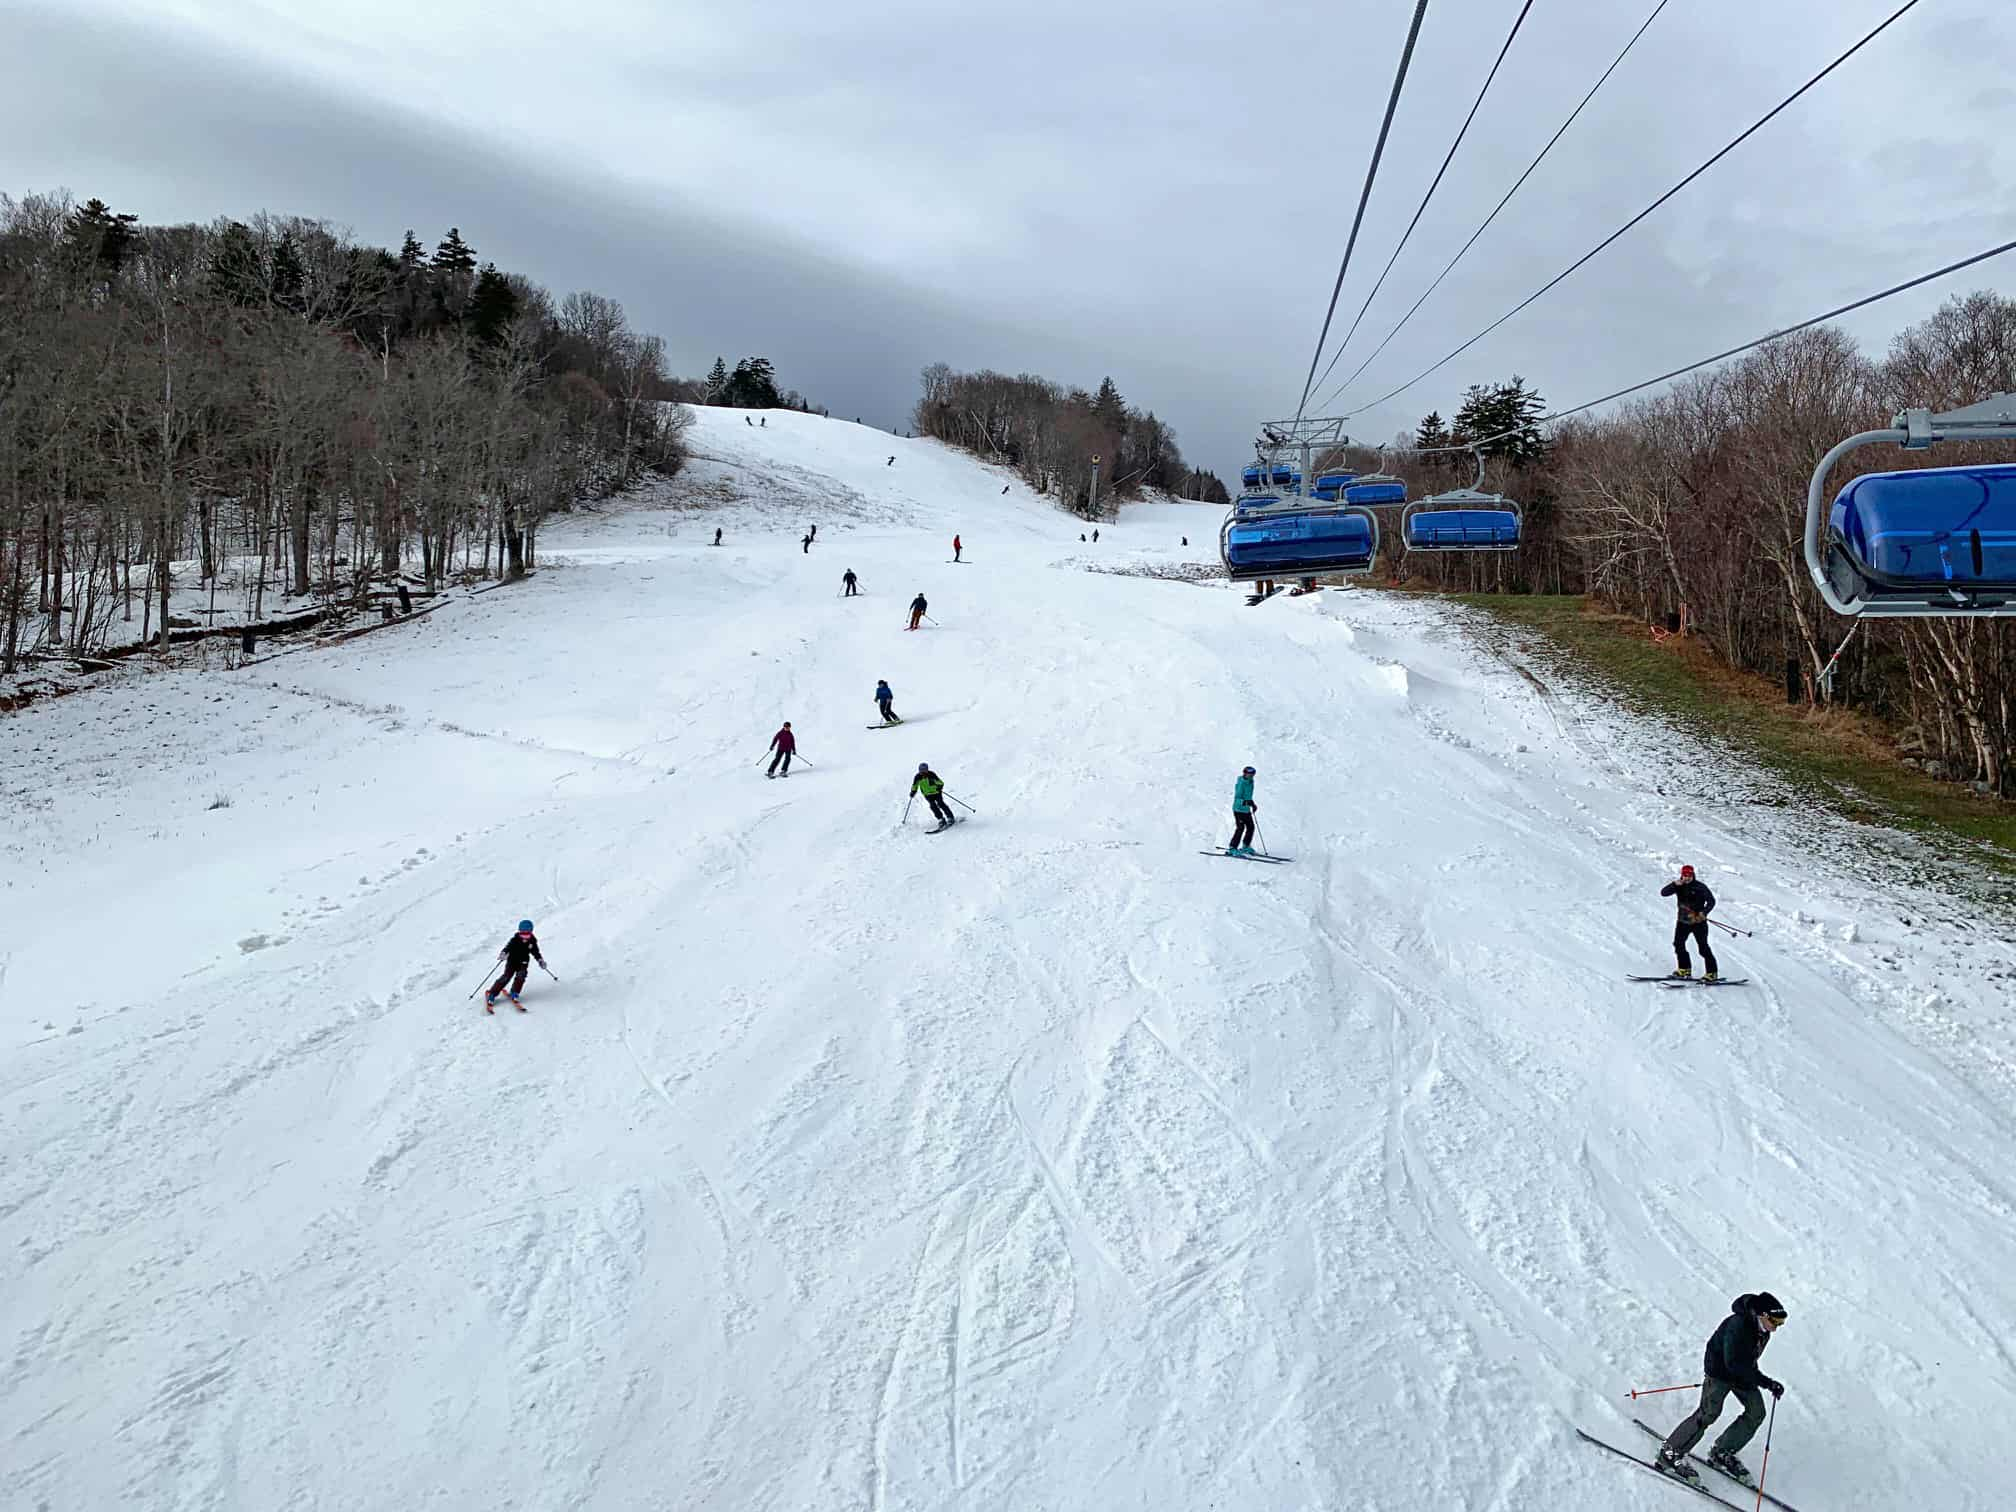 Opening day at Killington was 'near perfection' - The Mountain Times